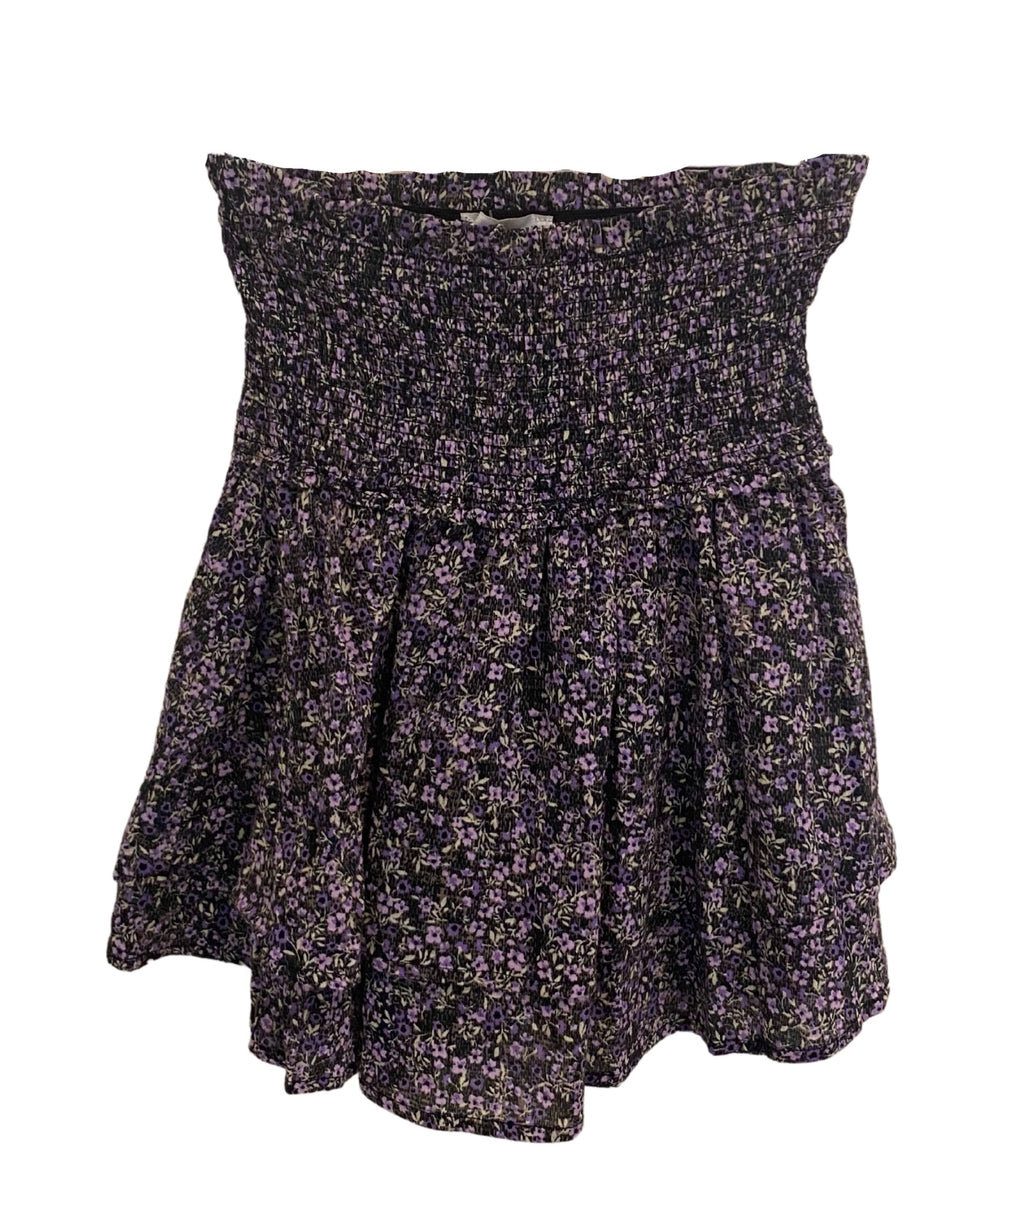 Hannah Purple Floral Smock Skirt Women